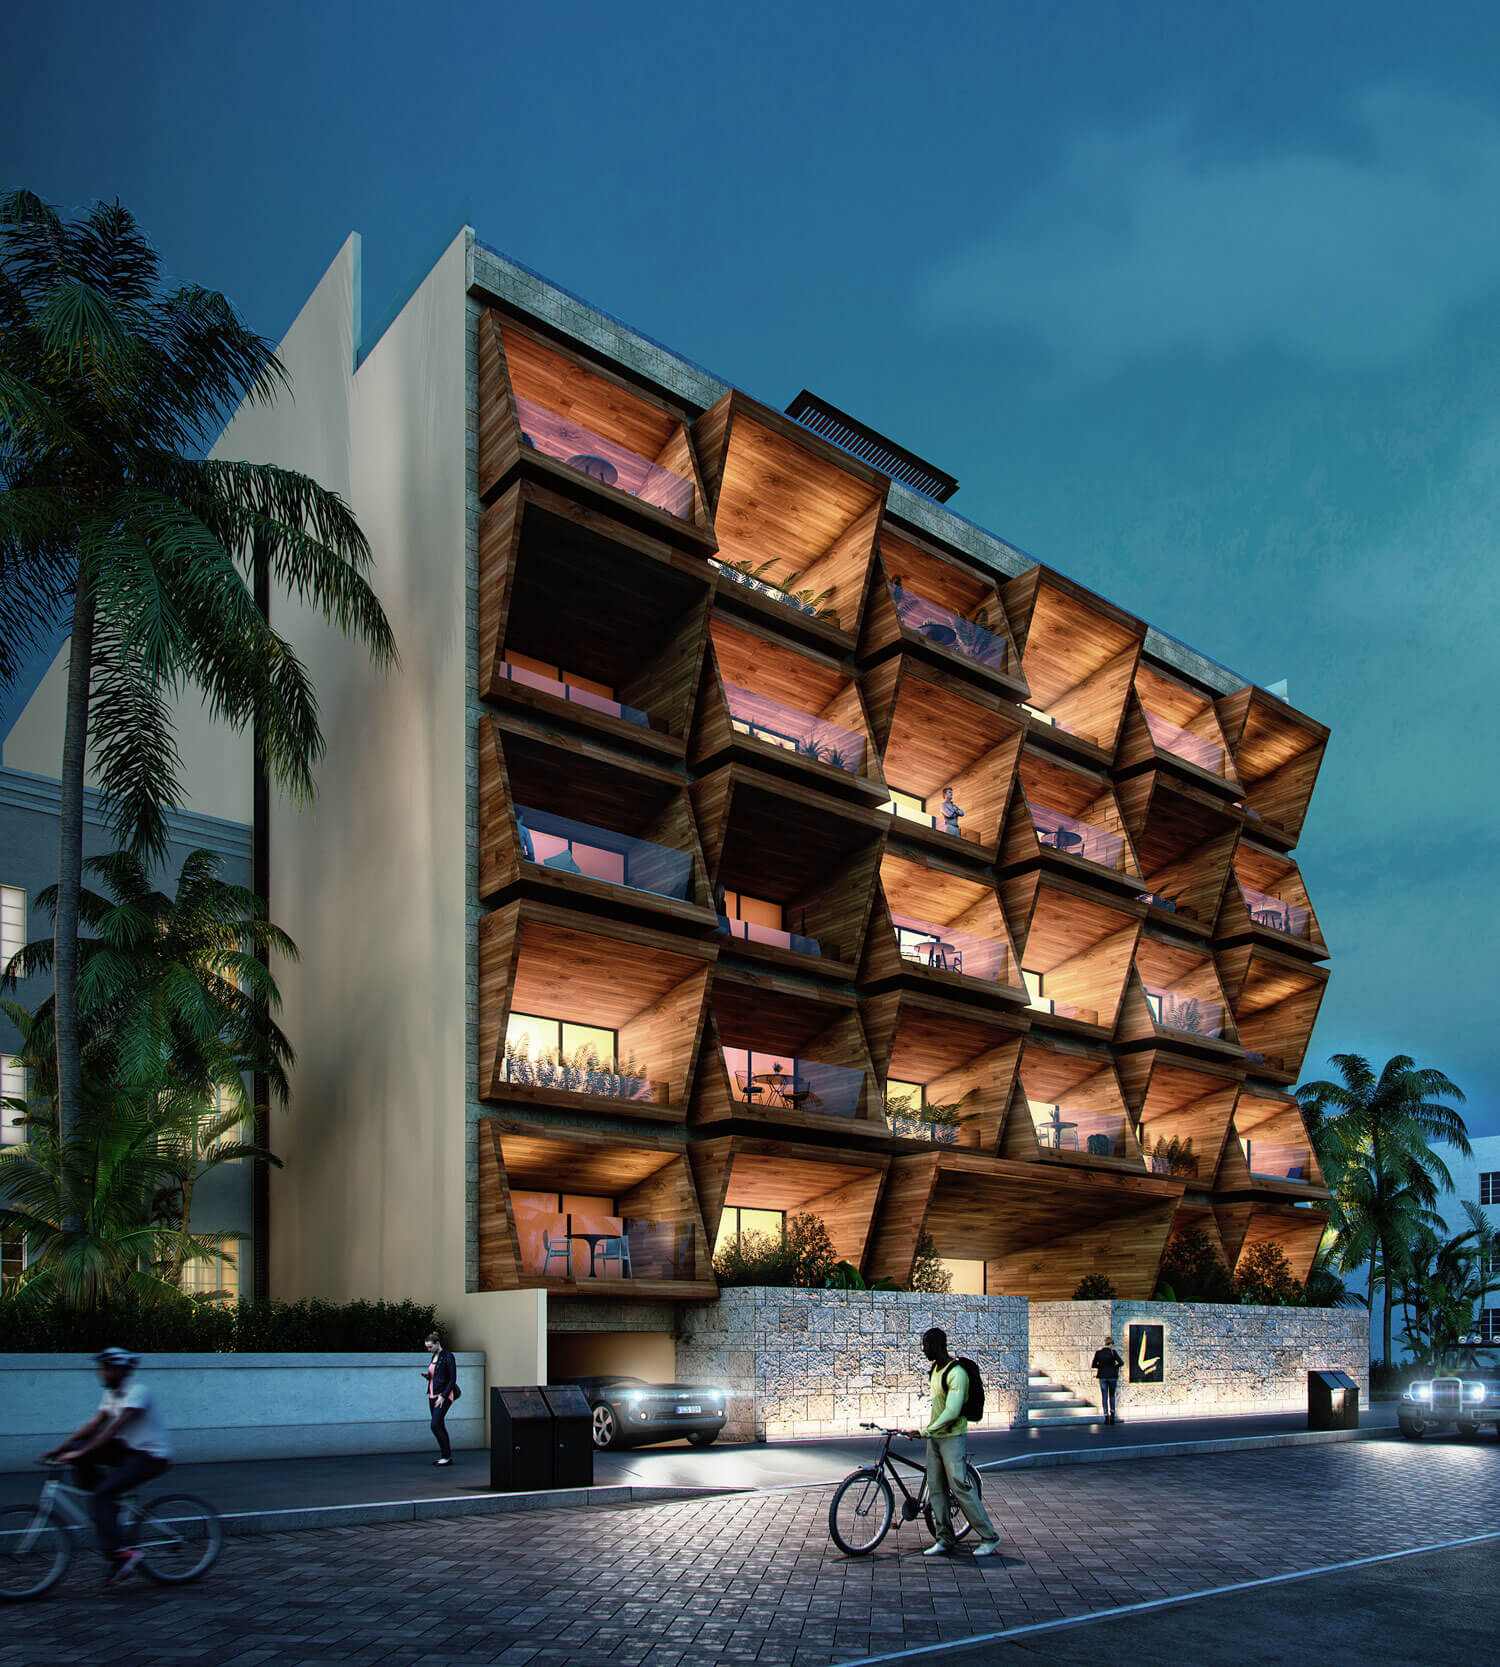 L Condos in Playa del Carmen</b> Master Plan